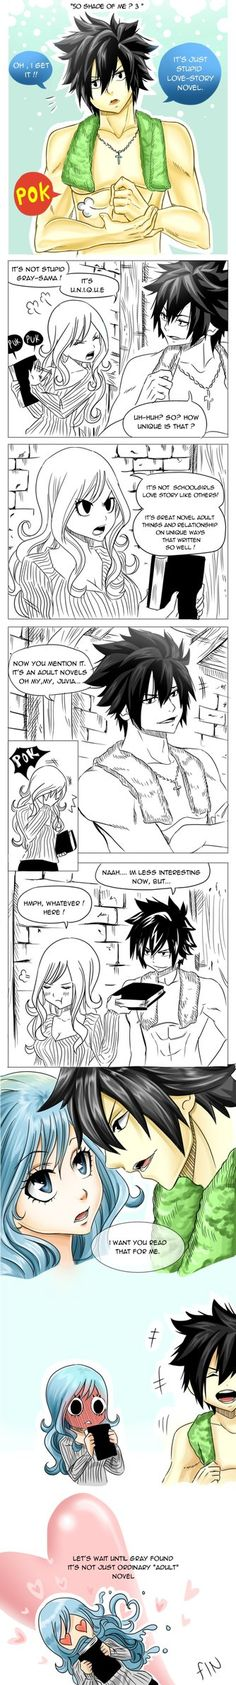 Wtf juvia and gray